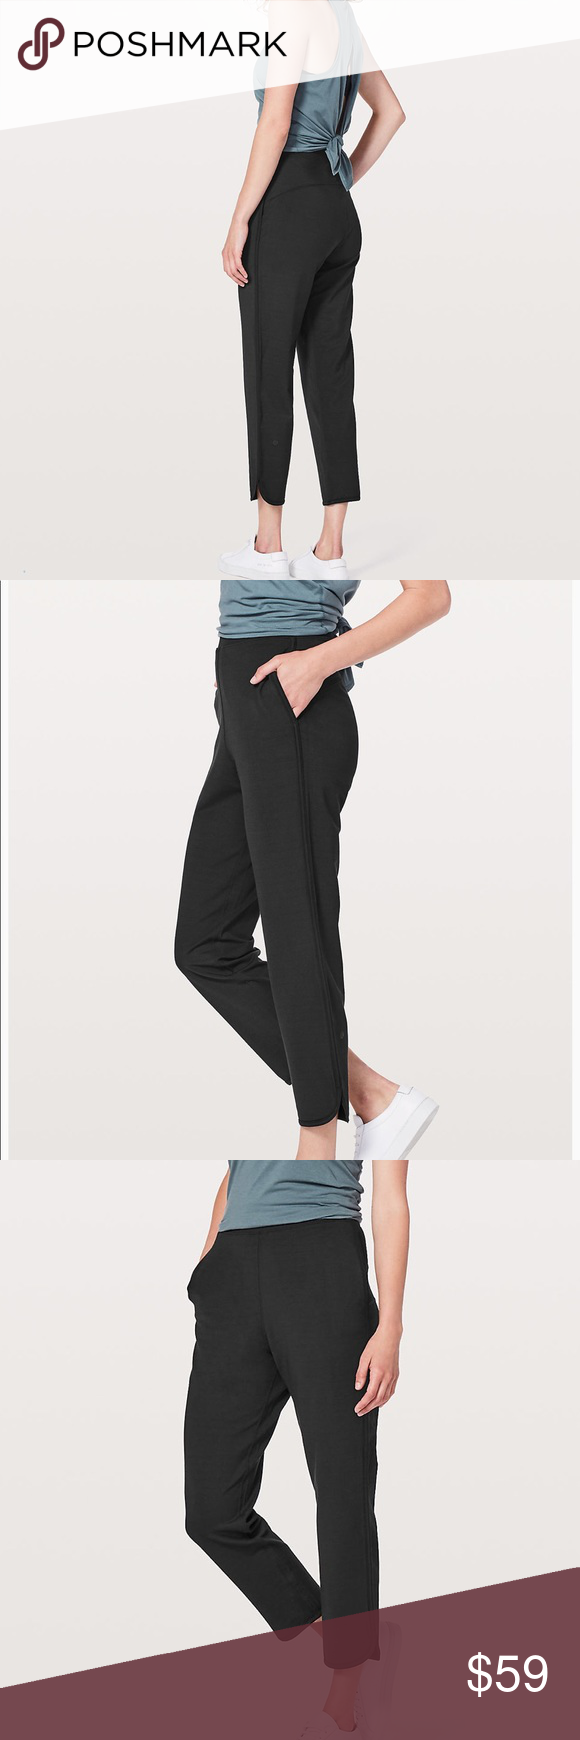 00be0d62d Lululemon Every Moment Pant Size 6